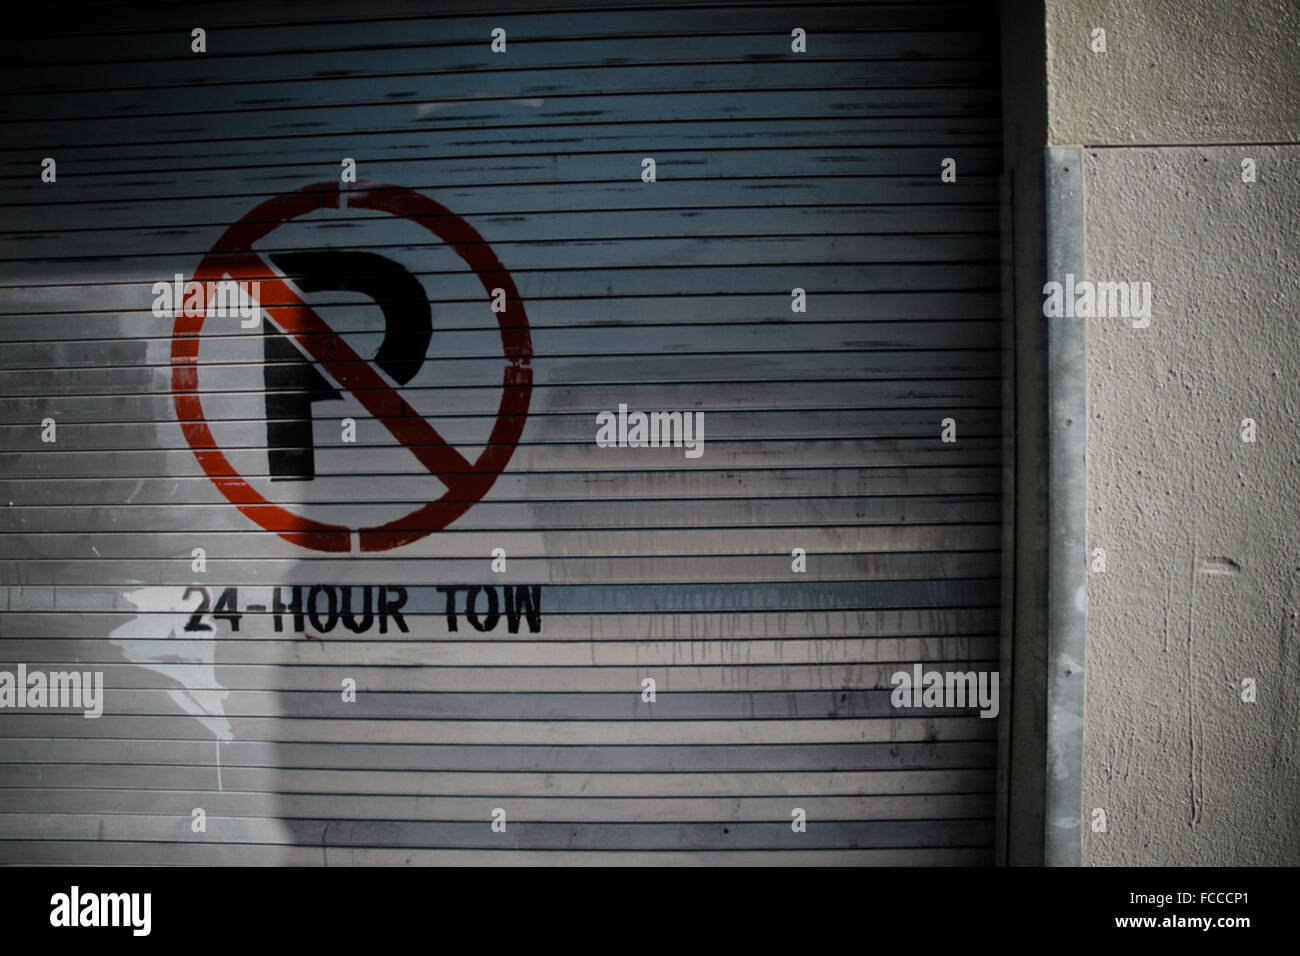 No Parking Mentioned On Closed Shutter - Stock Image